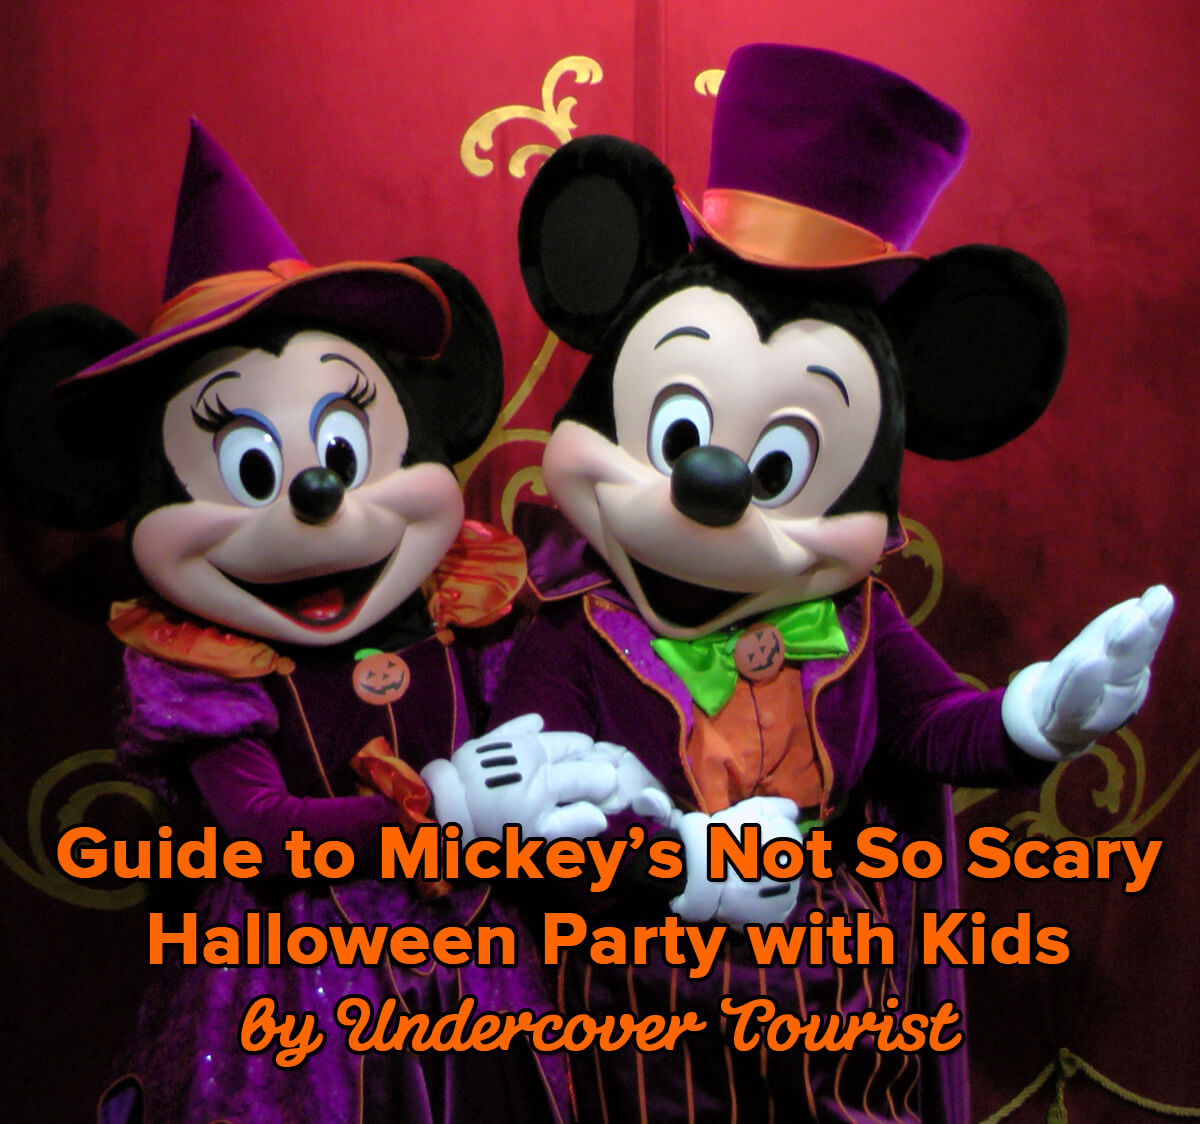 Guide to Mickey's Not So Scary Halloween Party 2017